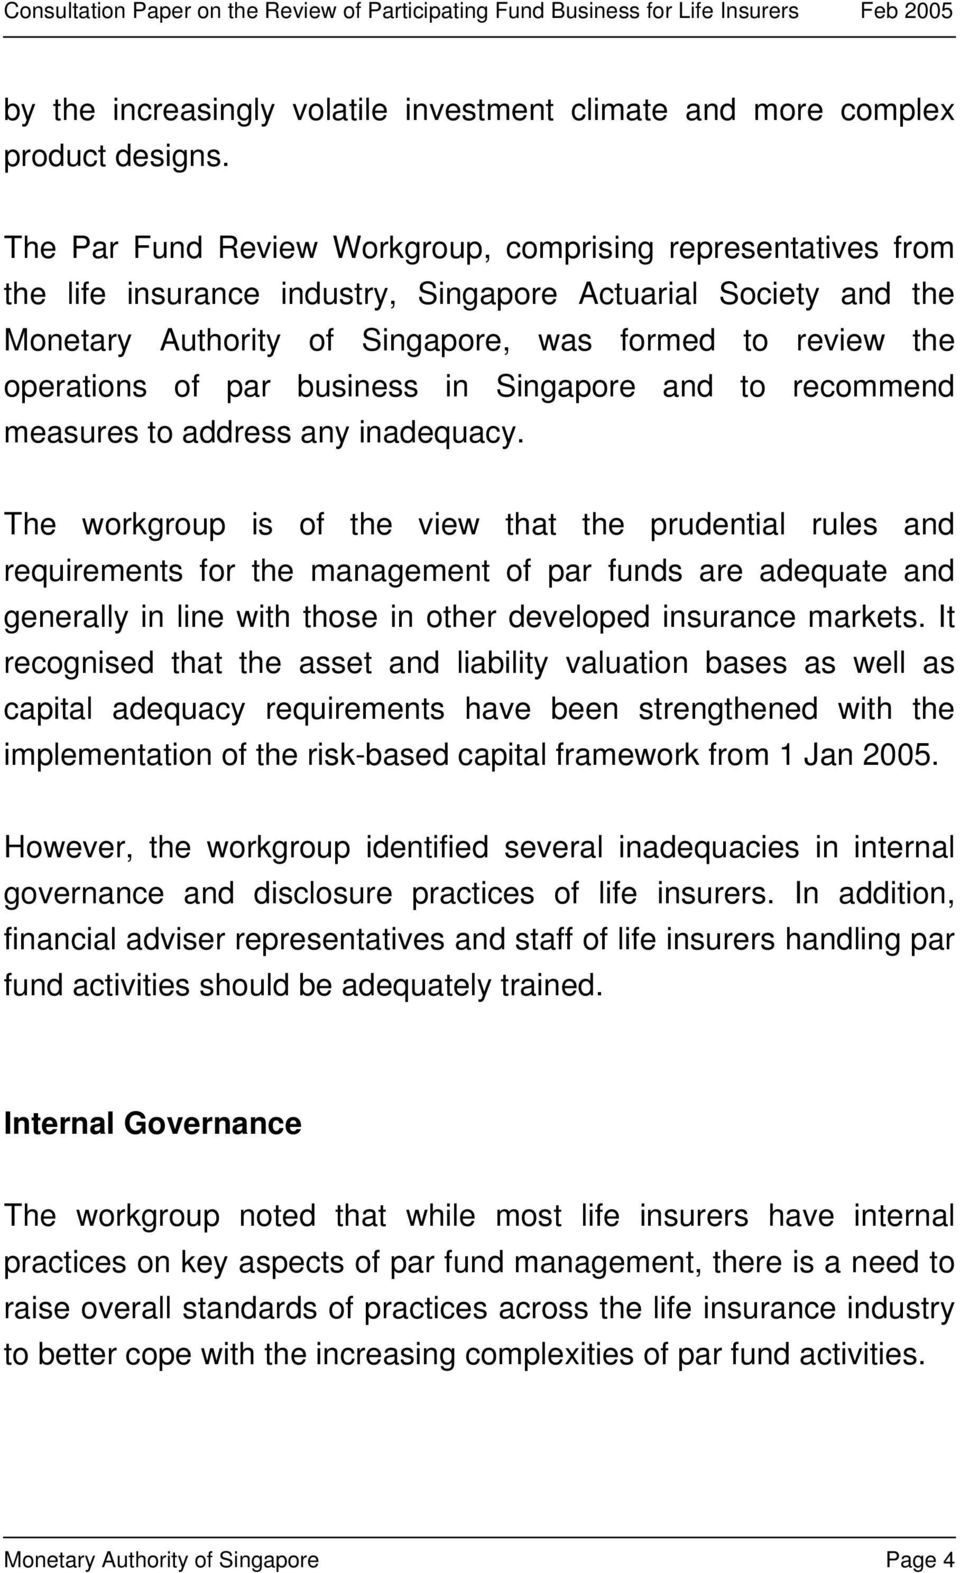 par business in Singapore and to recommend measures to address any inadequacy.